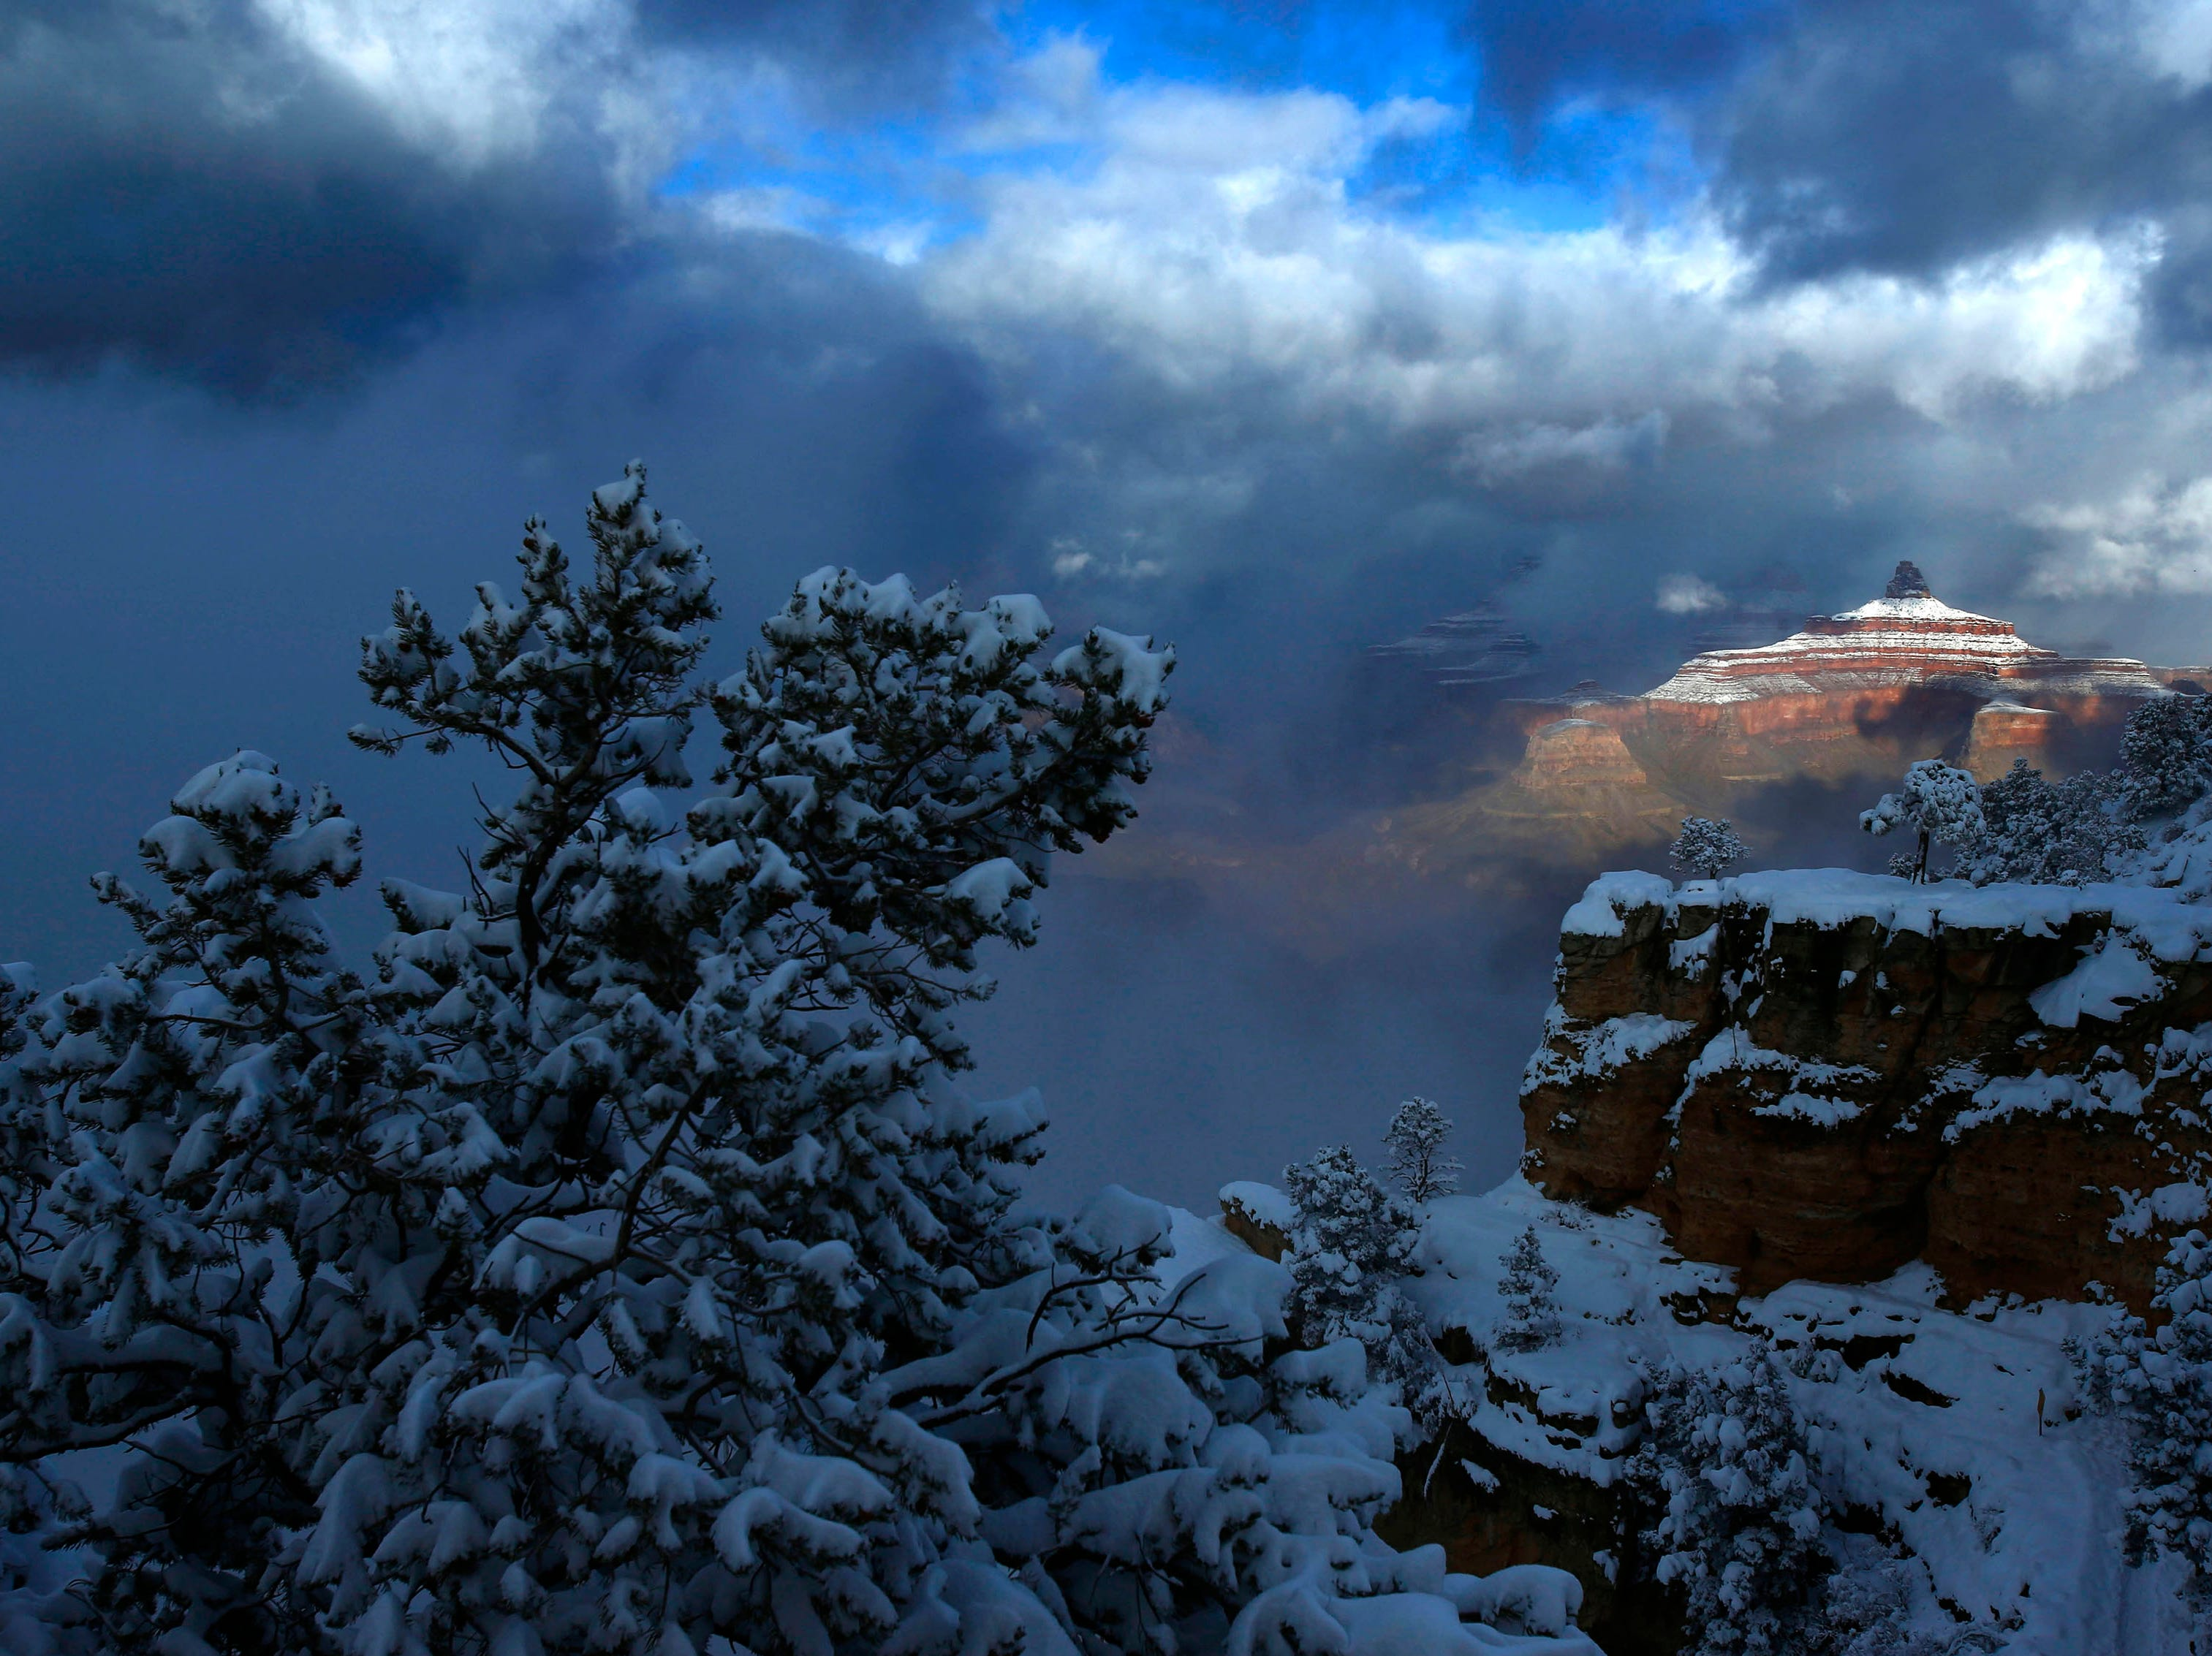 Sunshine breaks through the clouds and illuminates the rock formation Zoroaster Temple following a snow storm that passed over the Grand Canyon.